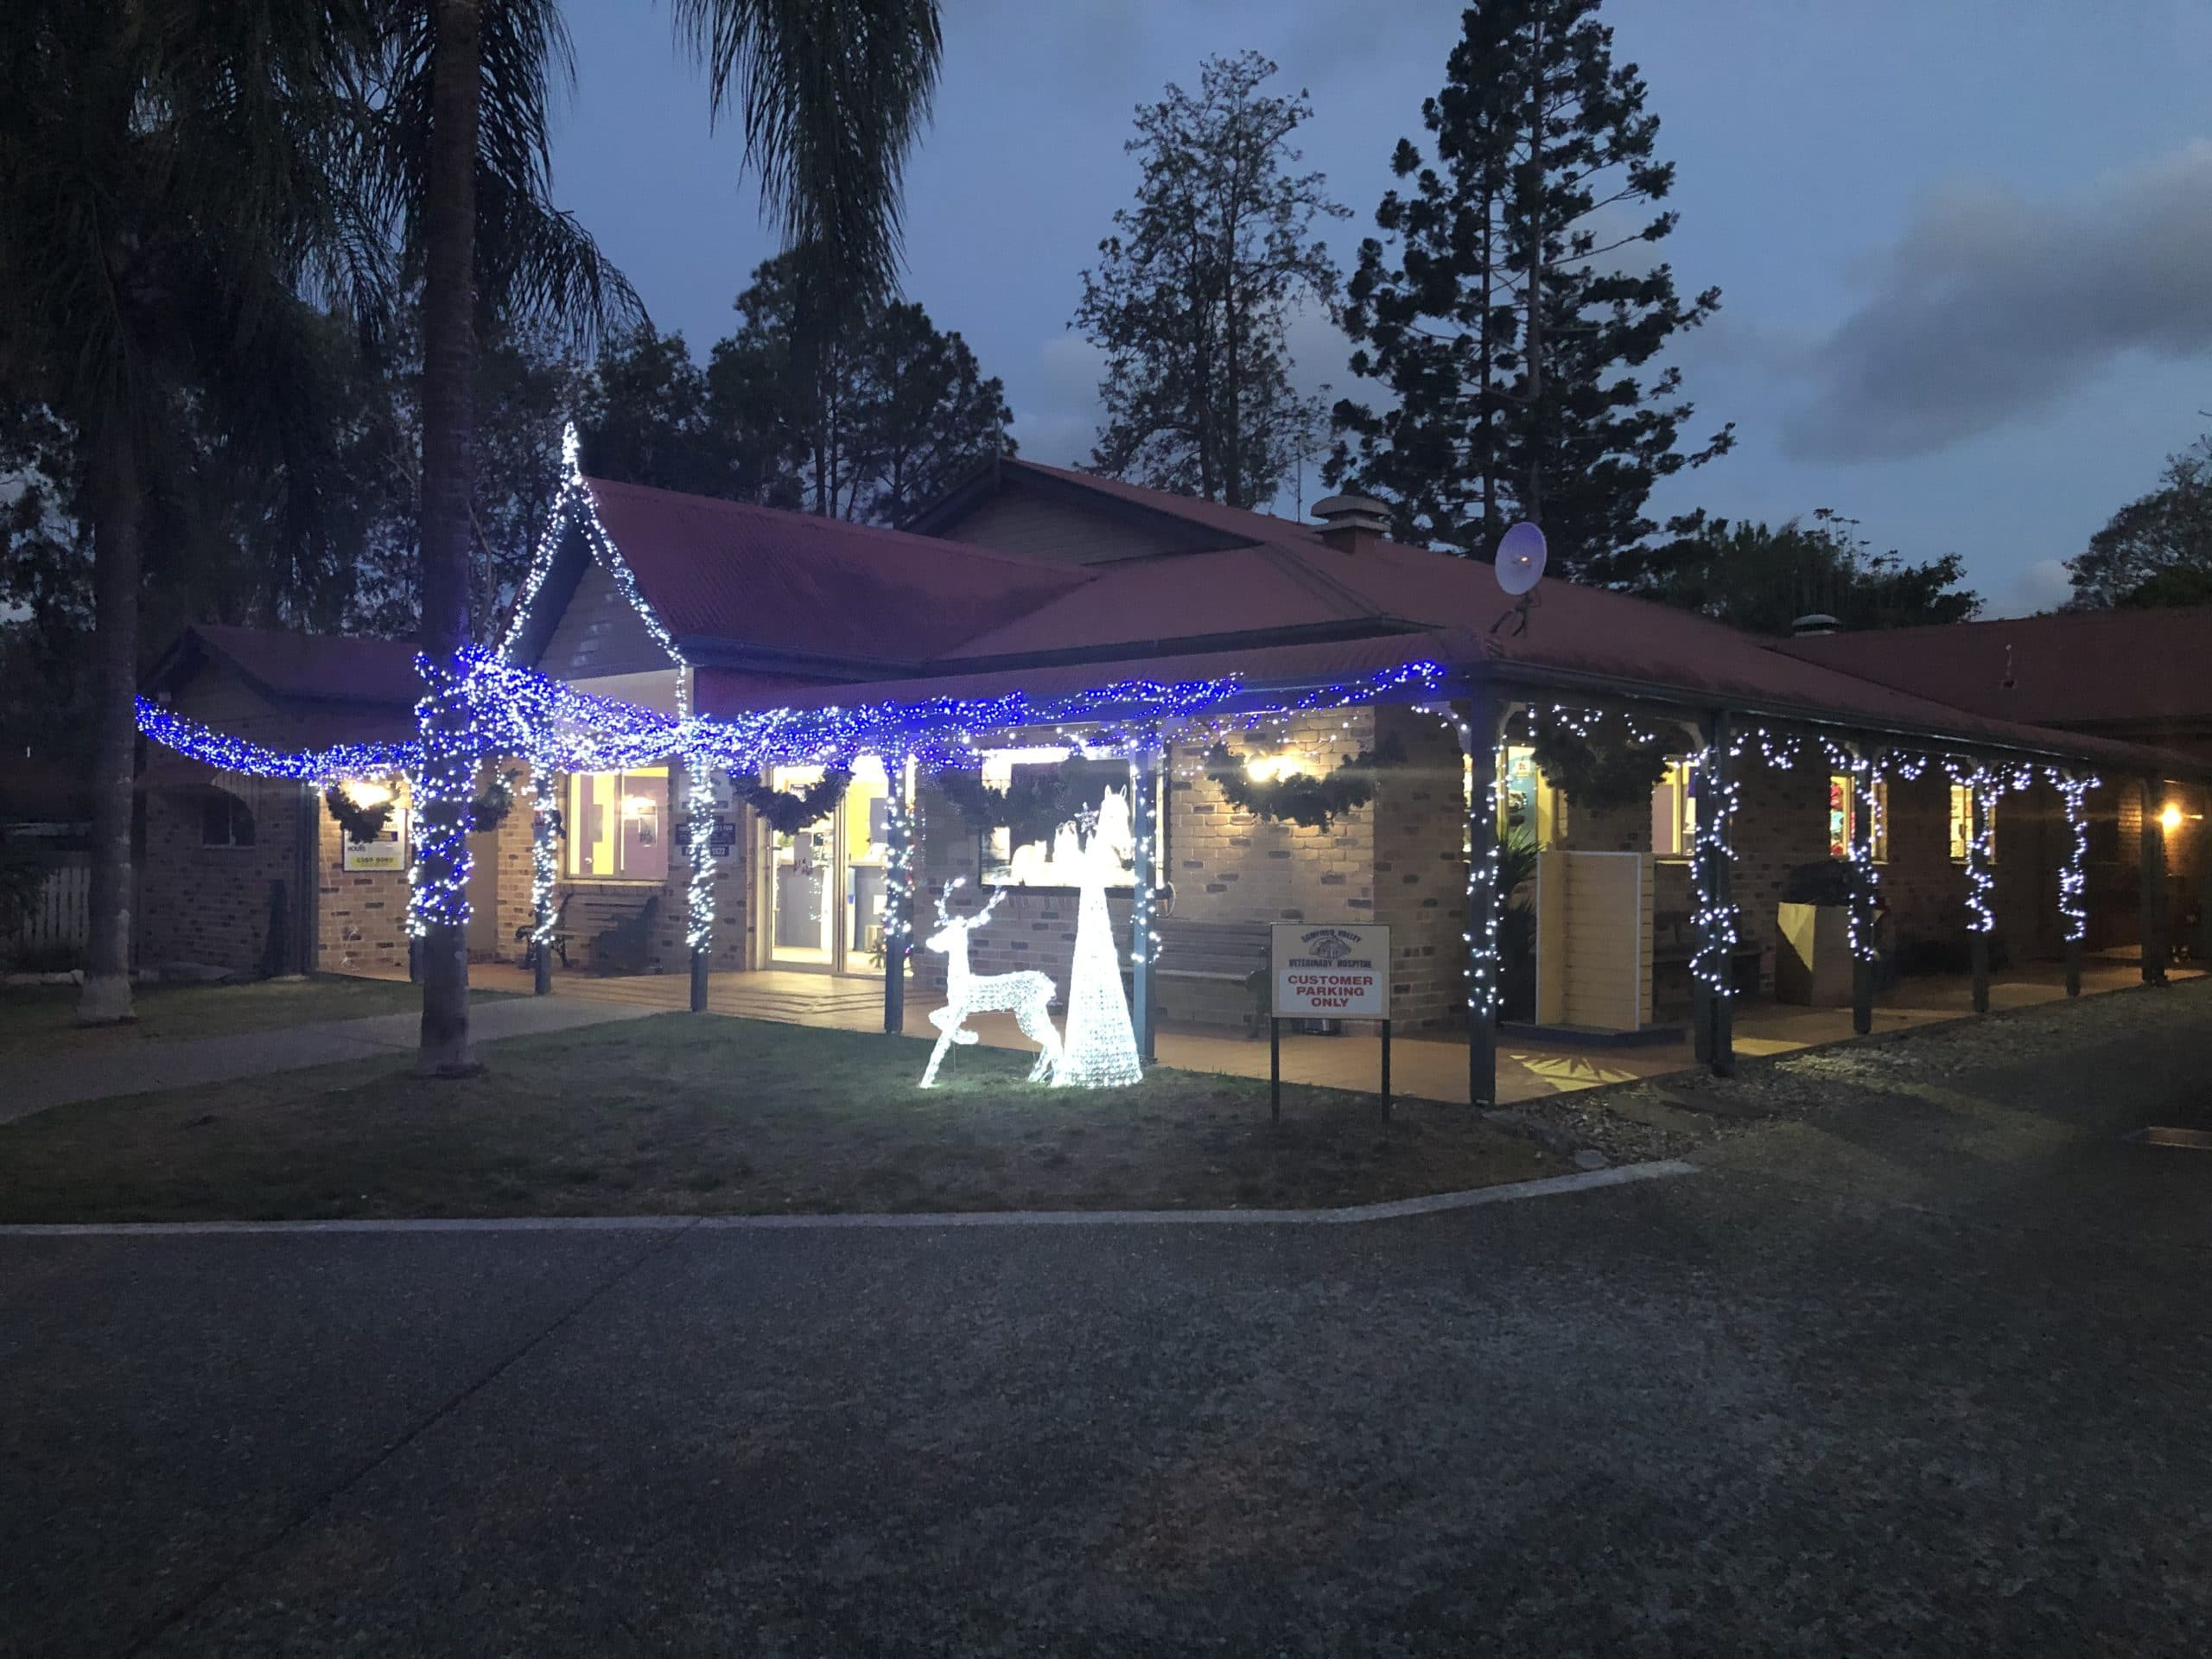 2019 XMAS BUSINESS LIGHTS COMPETITION WAS A GREAT SUCCESS…SO WHO WILL TAKE IT OUT IN 2020?